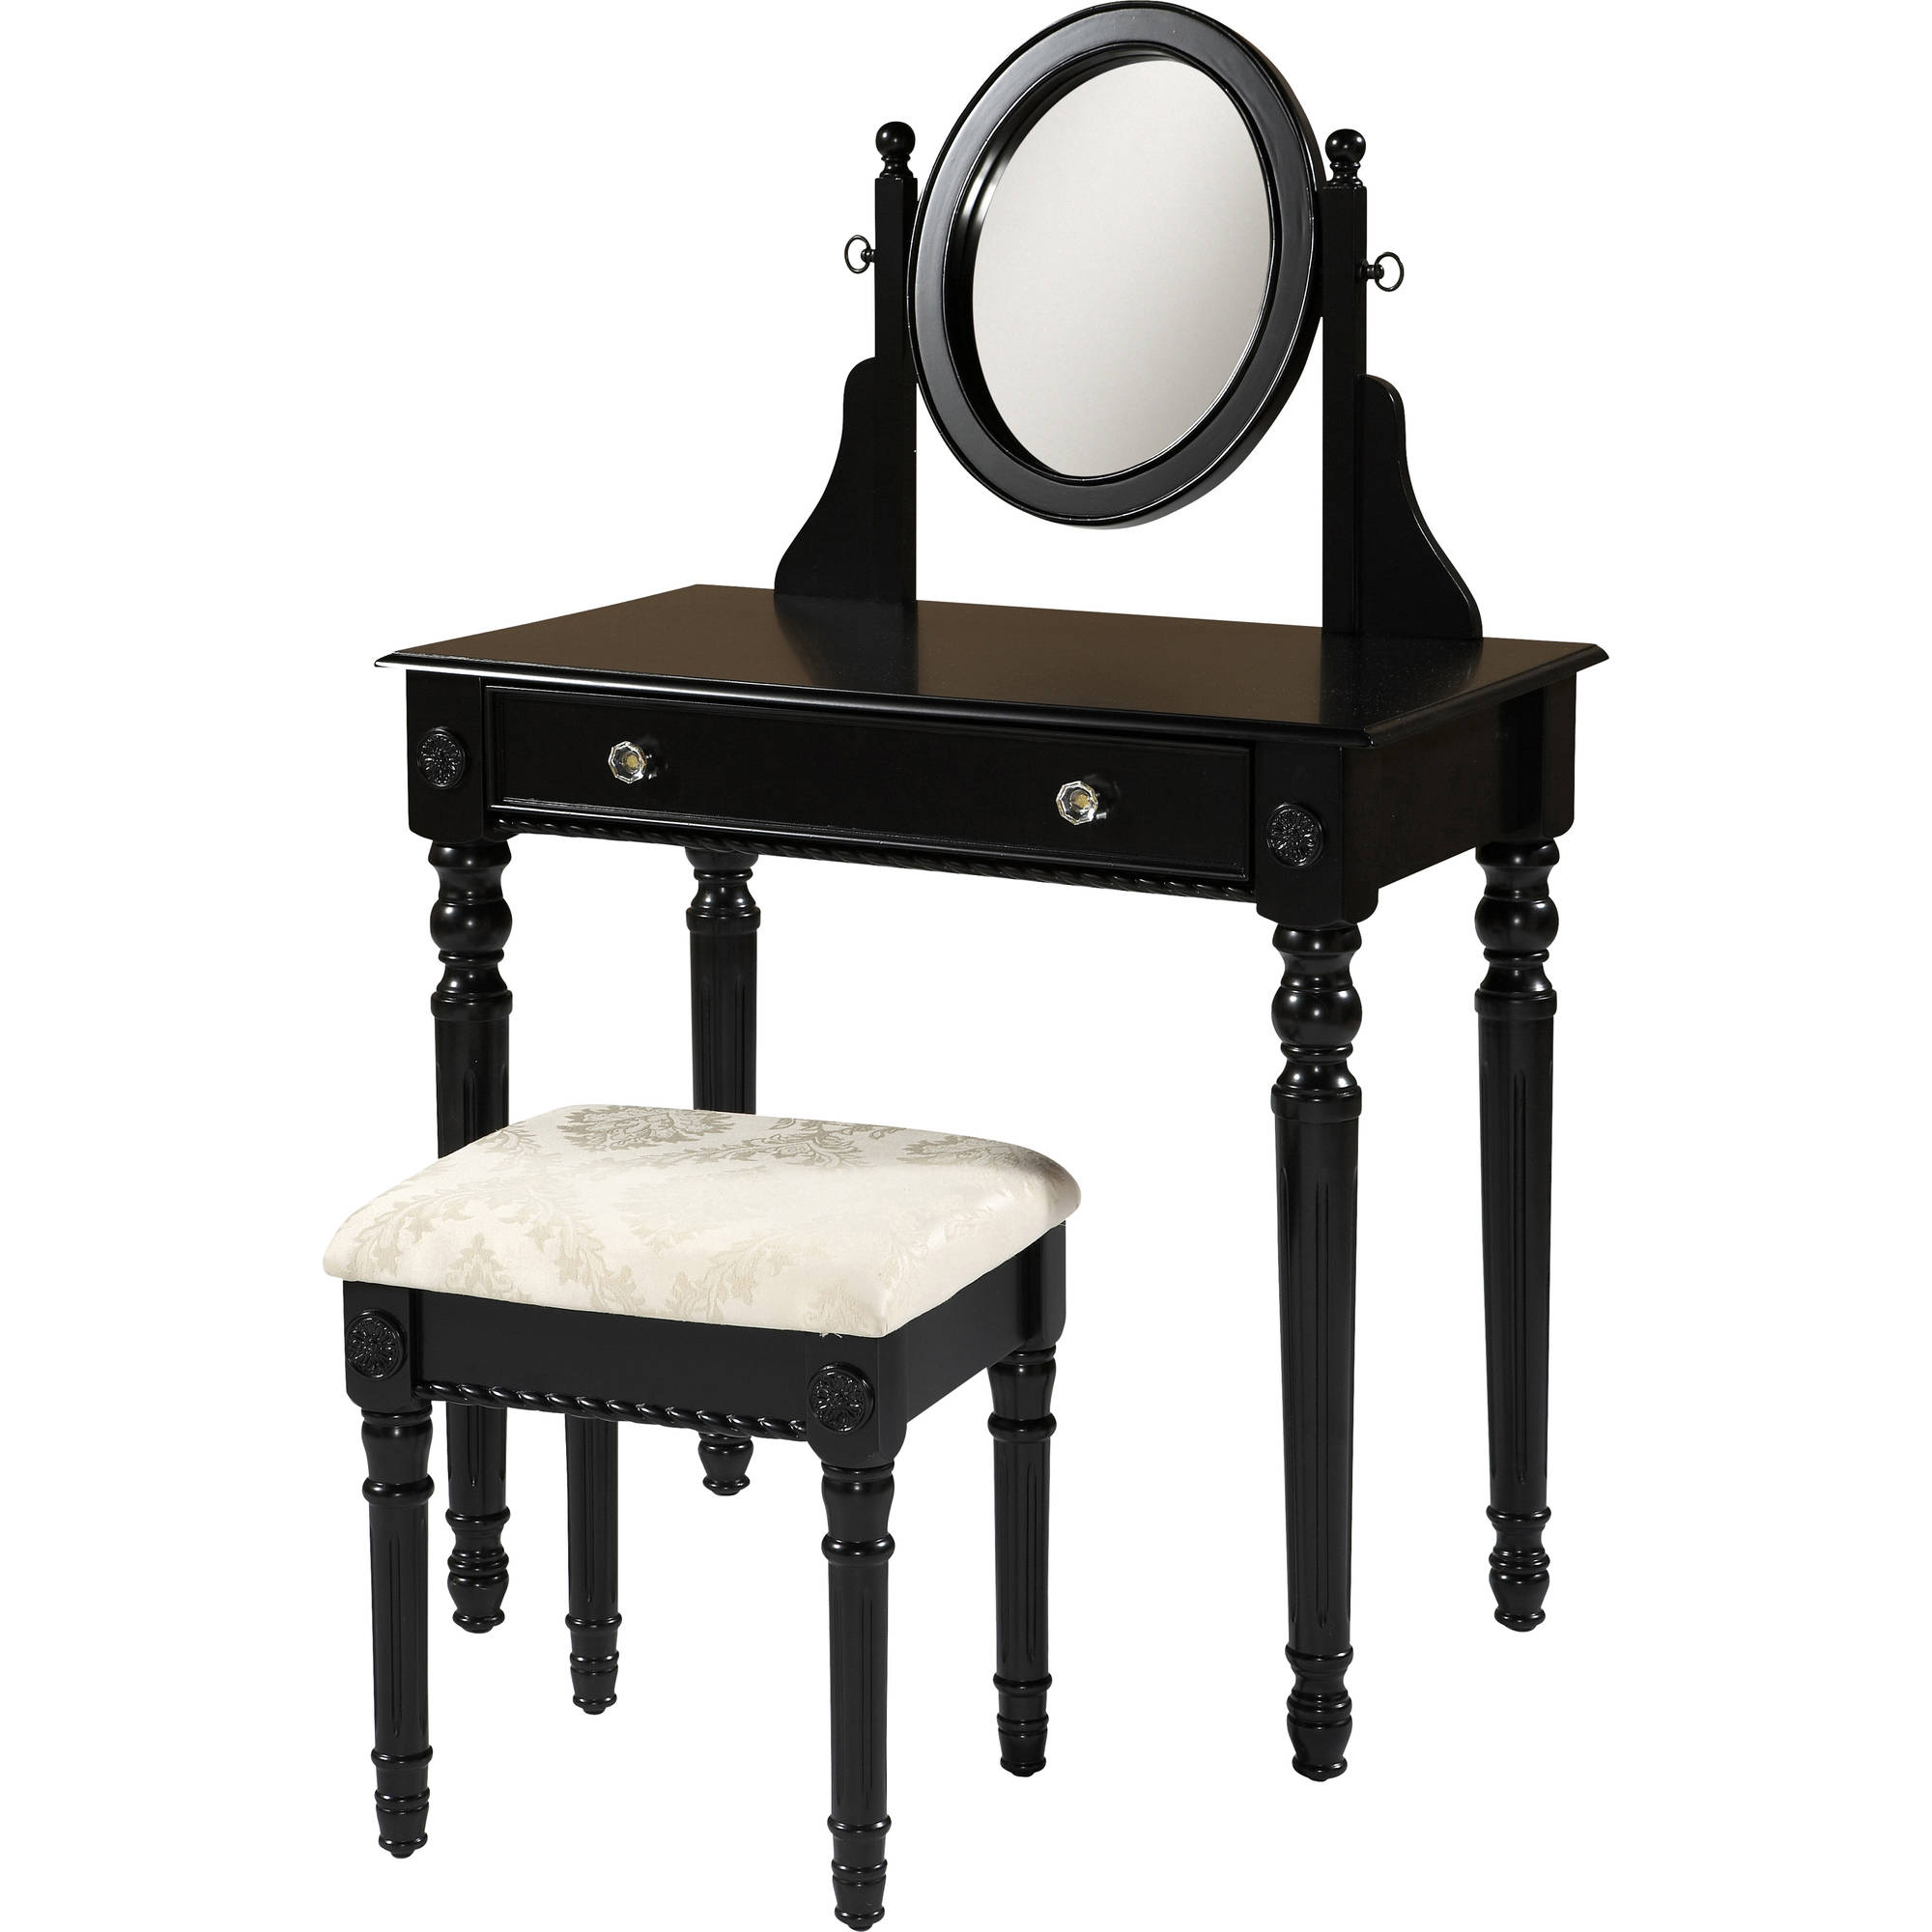 Linon Home Decor Lorraine Vanity Set, Multiple Colors   Walmart.com